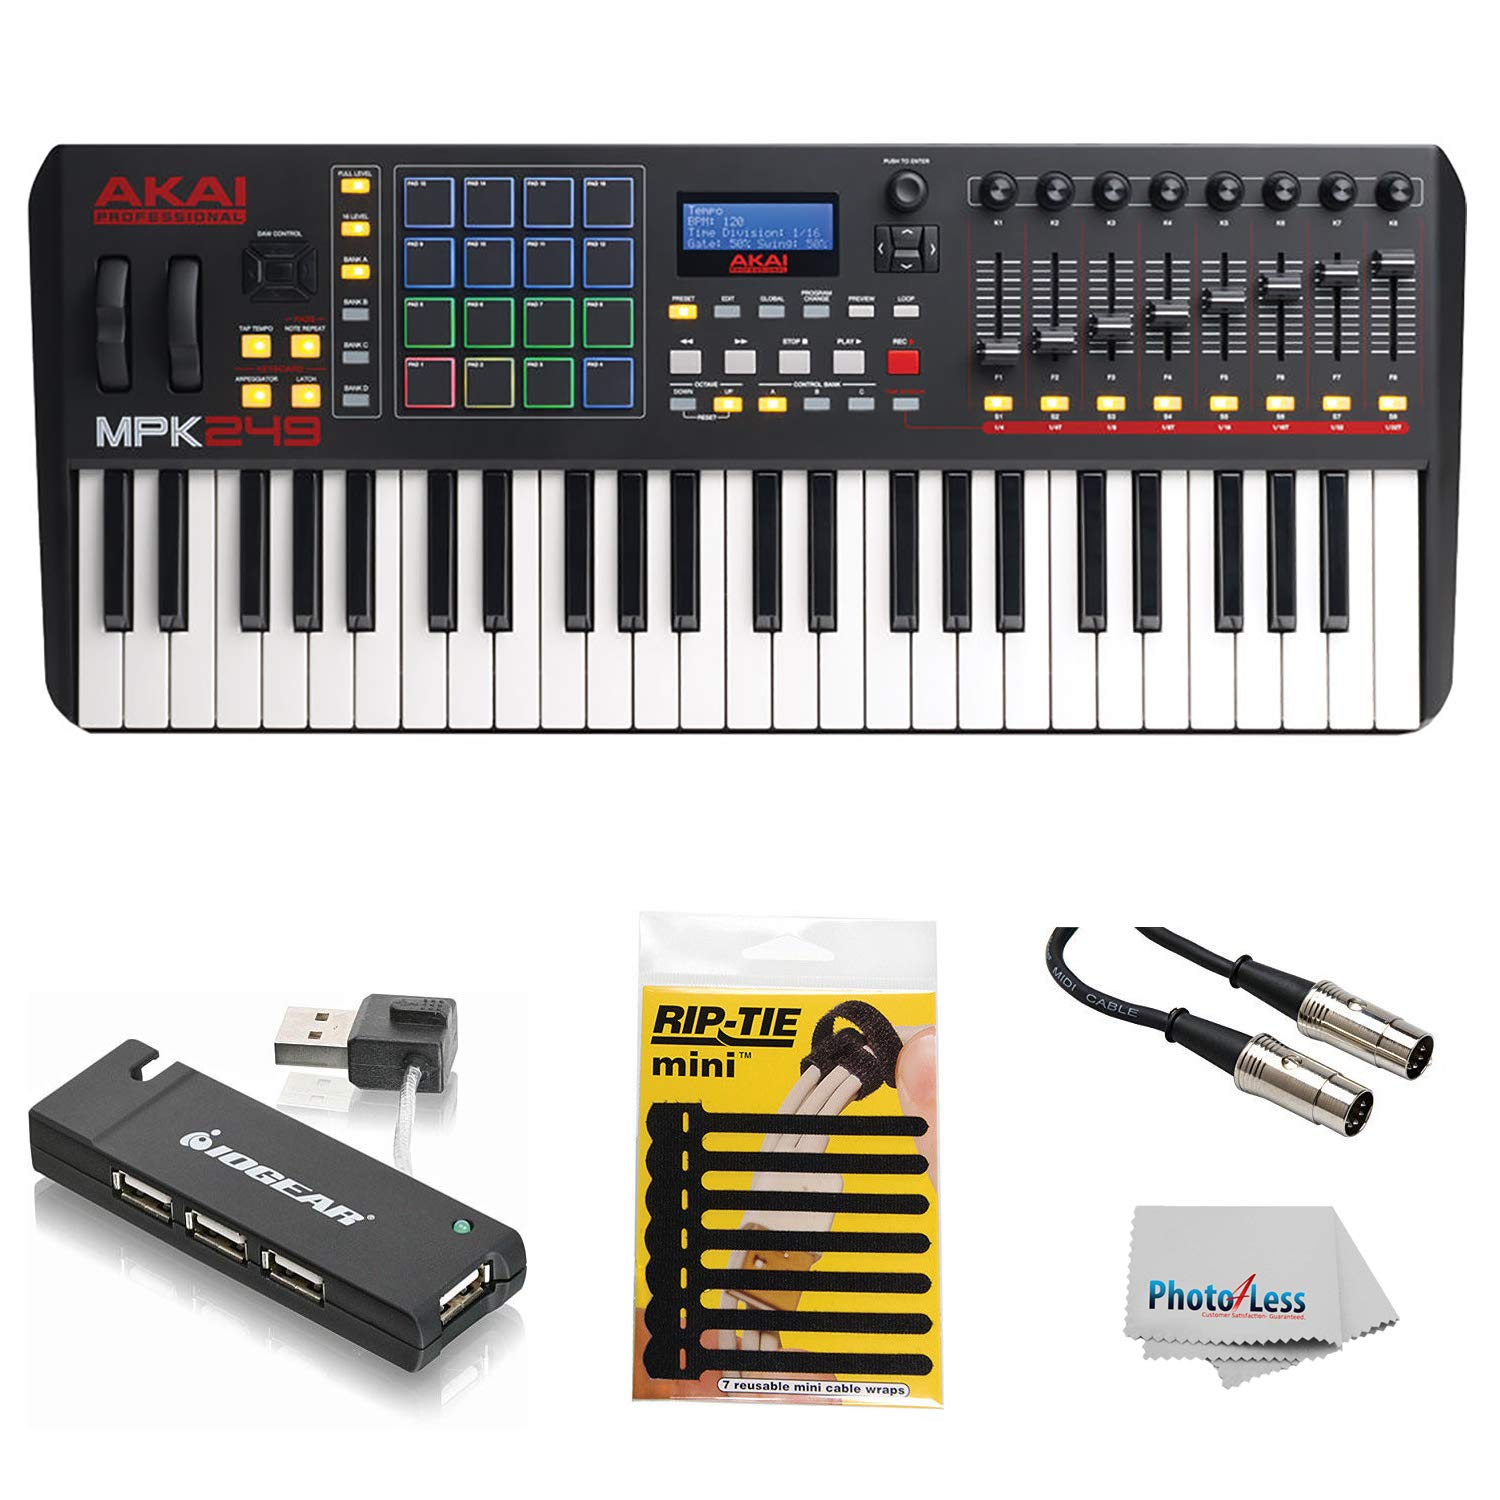 Akai Professional Compact Keyboard Controller (49-Key) with 4-Port USB 2.0 Hub + MIDI Cable Pack of Cable ties & Cleaning Cloth by Akai (Image #1)